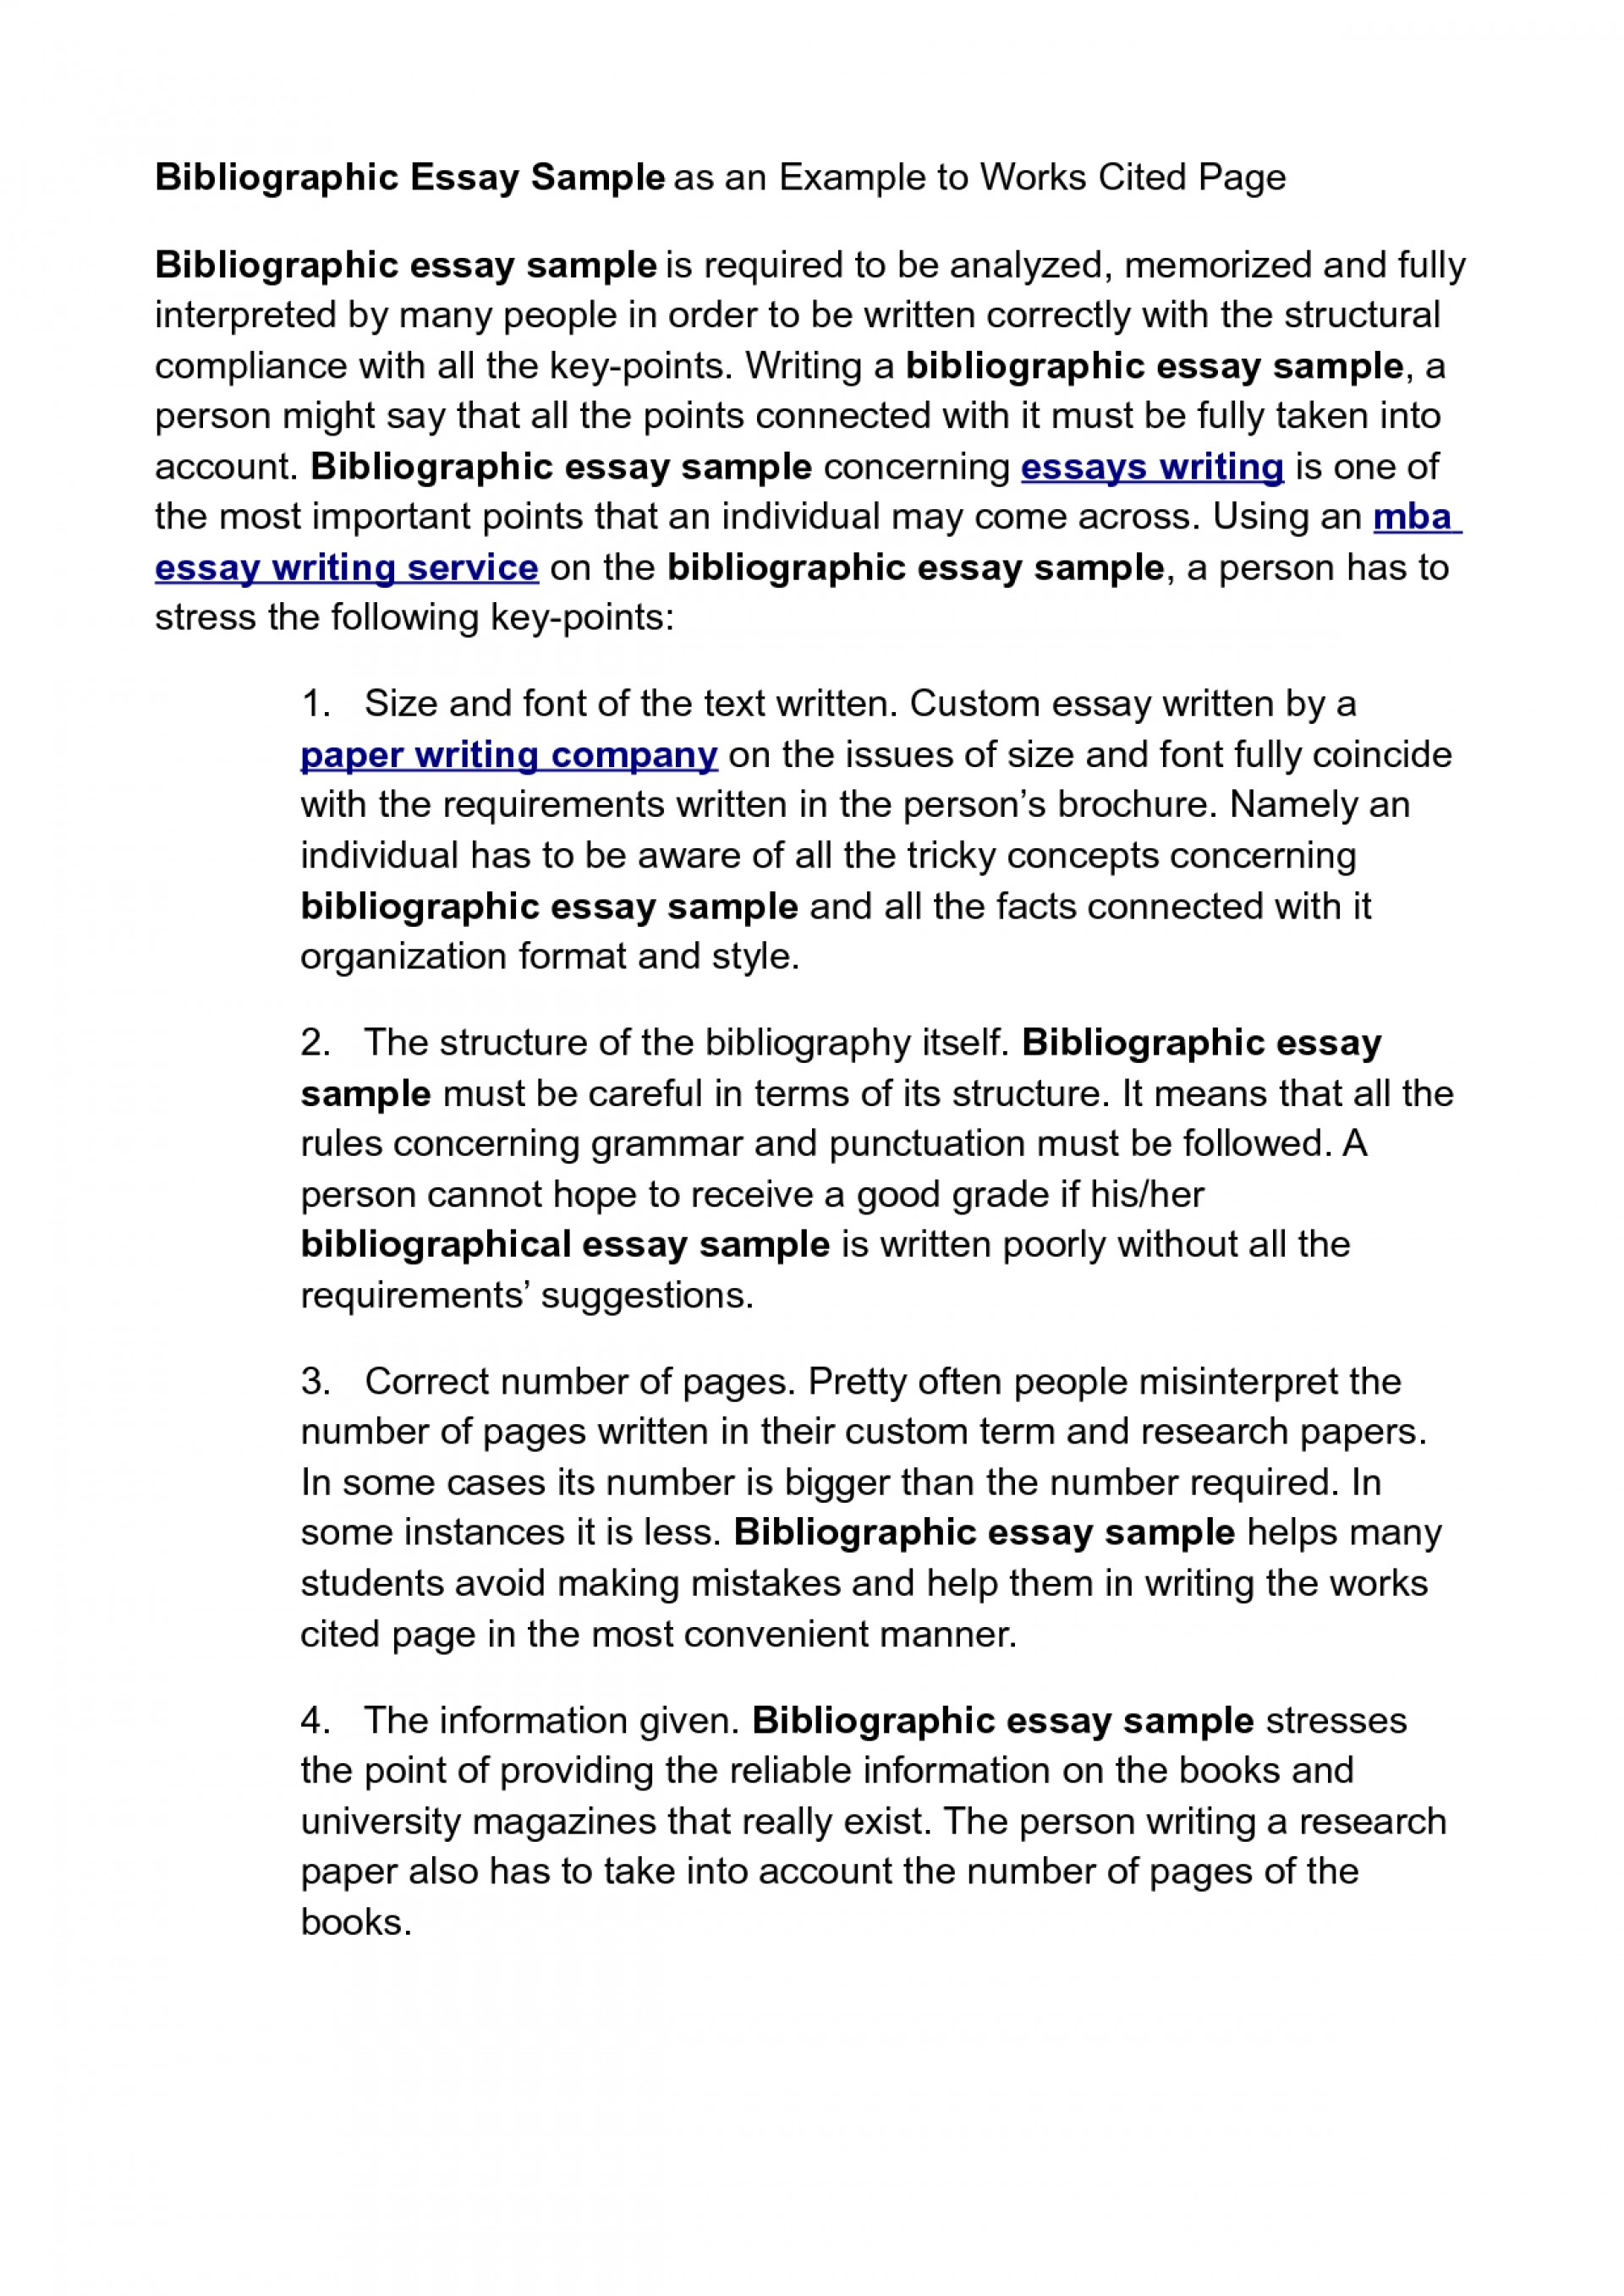 018 How To Cite An Essay Example Sample Persuasive With Works Cited Of Mla L Archaicawful In A Textbook Within Book Apa 8 1920